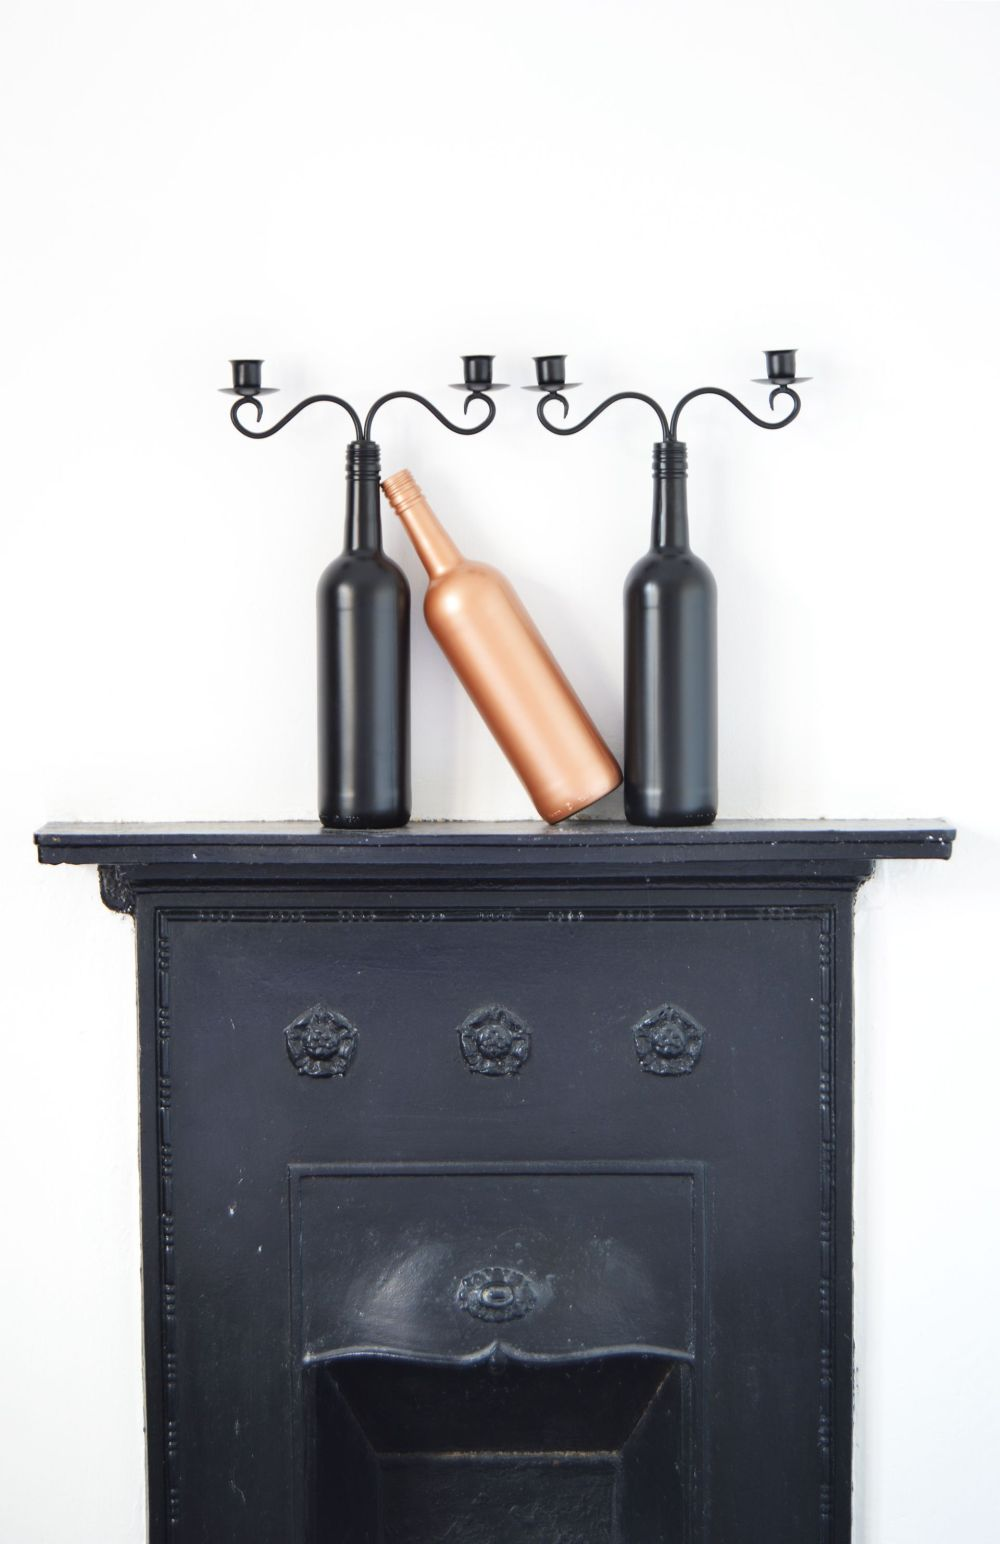 Spray-painted bottle candle holders